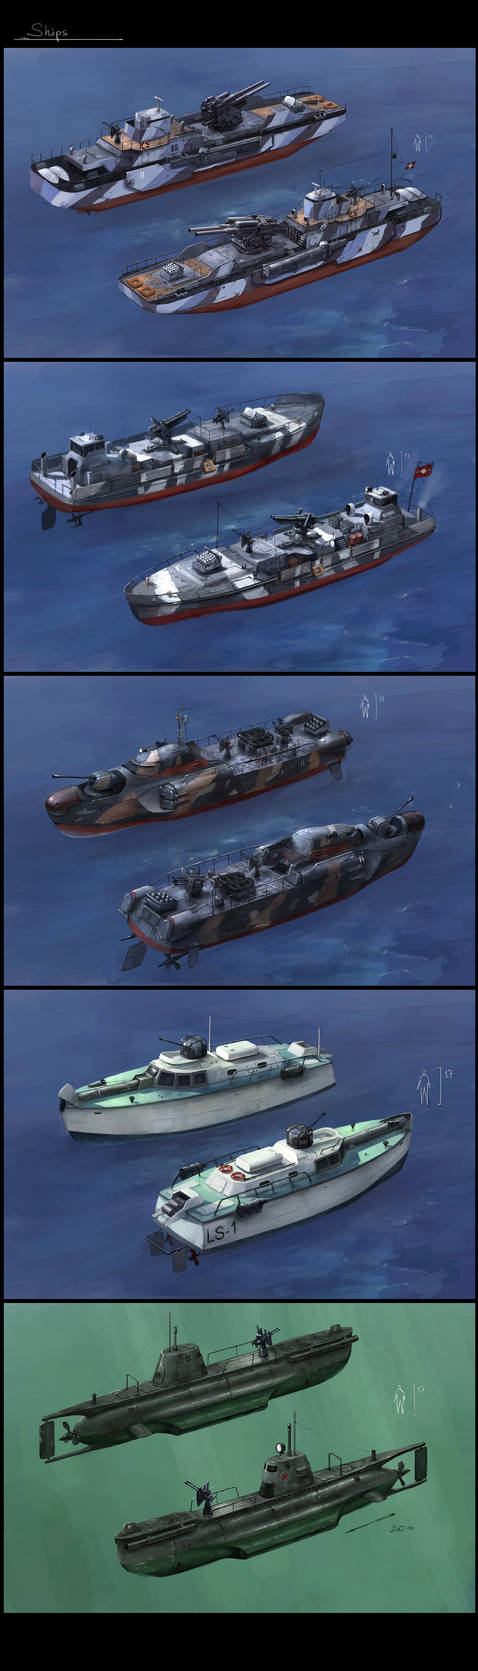 some boats